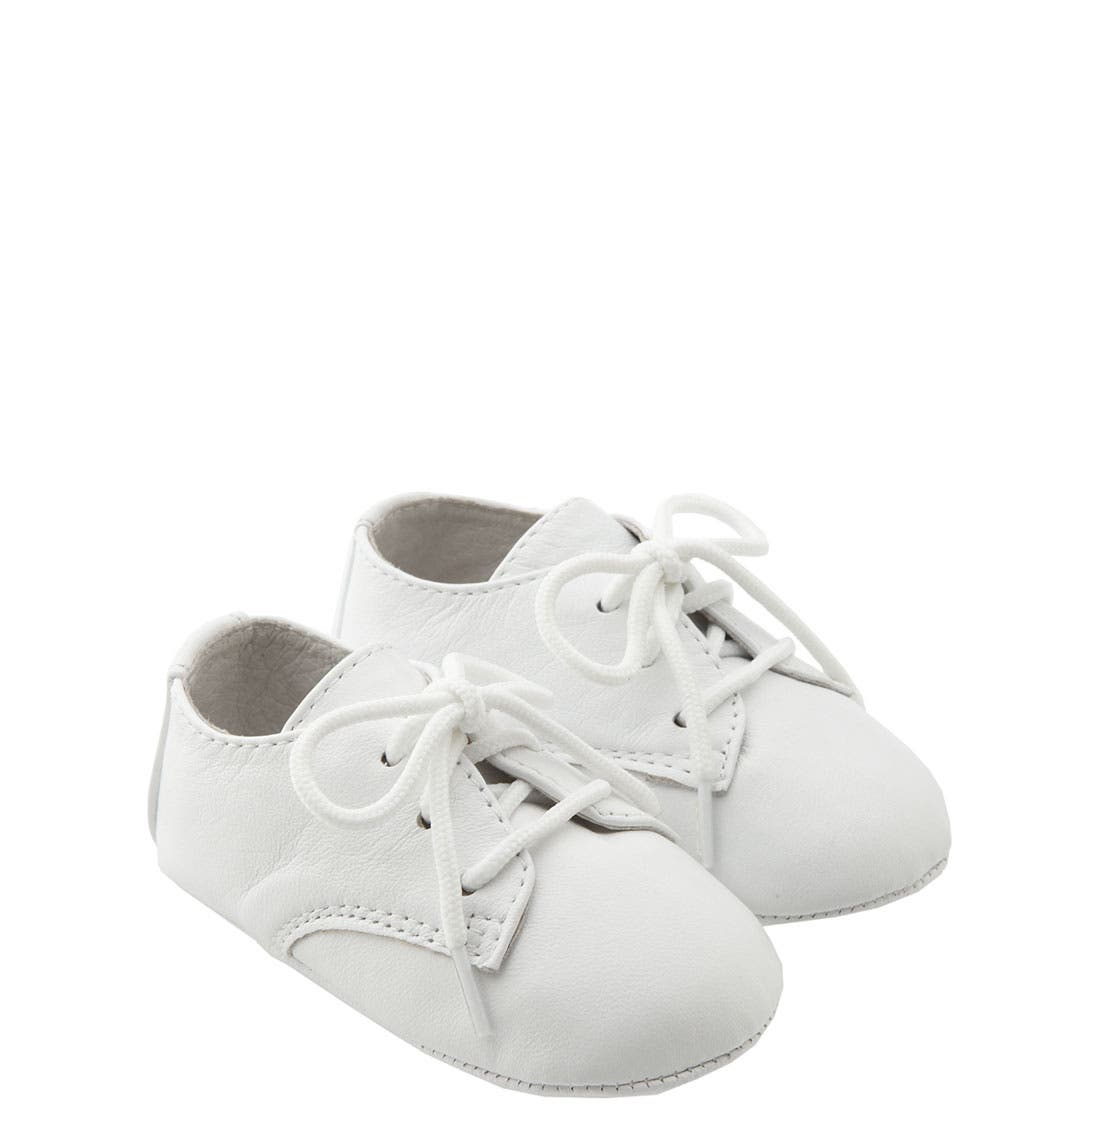 Alternate Image 1 Selected - Designer's Touch 'Eric' Crib Shoe (Baby)